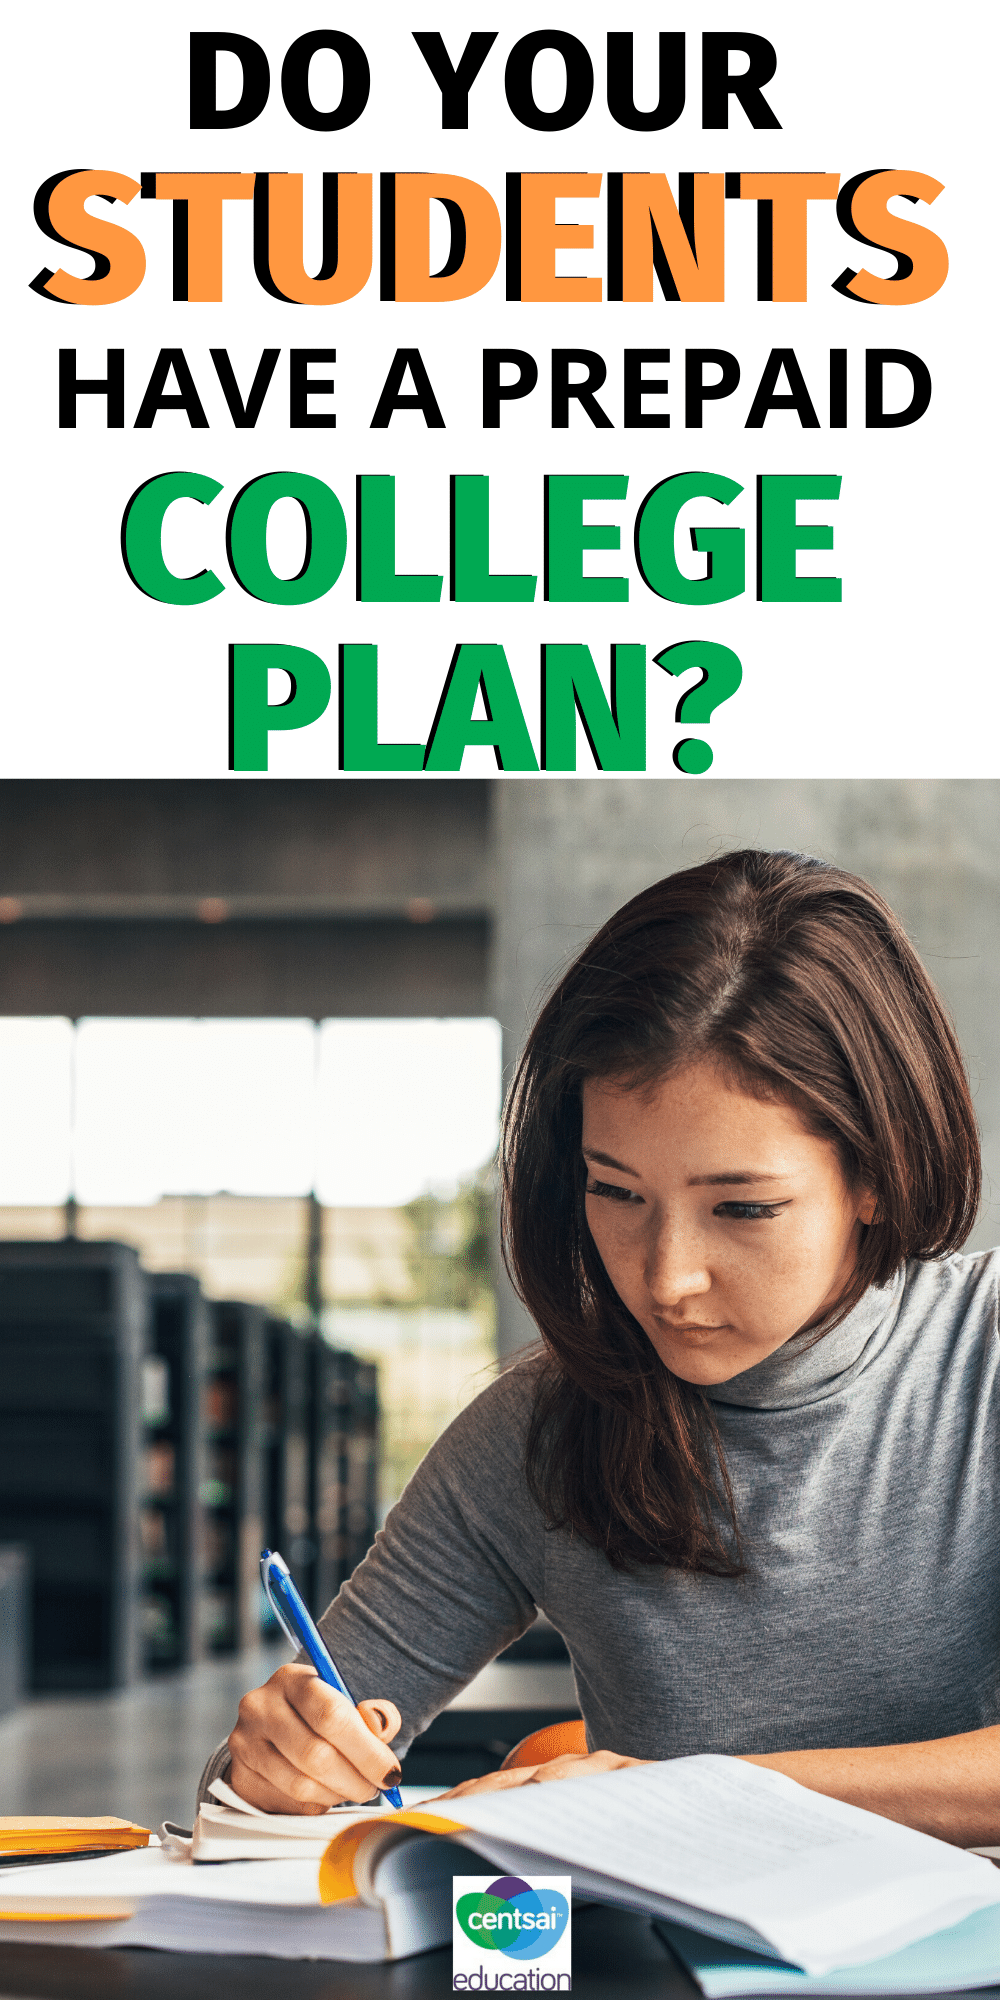 Some say a prepaid college plan is a bad investment but there are many reasons it could be an amazing benefit to your students if they have one.